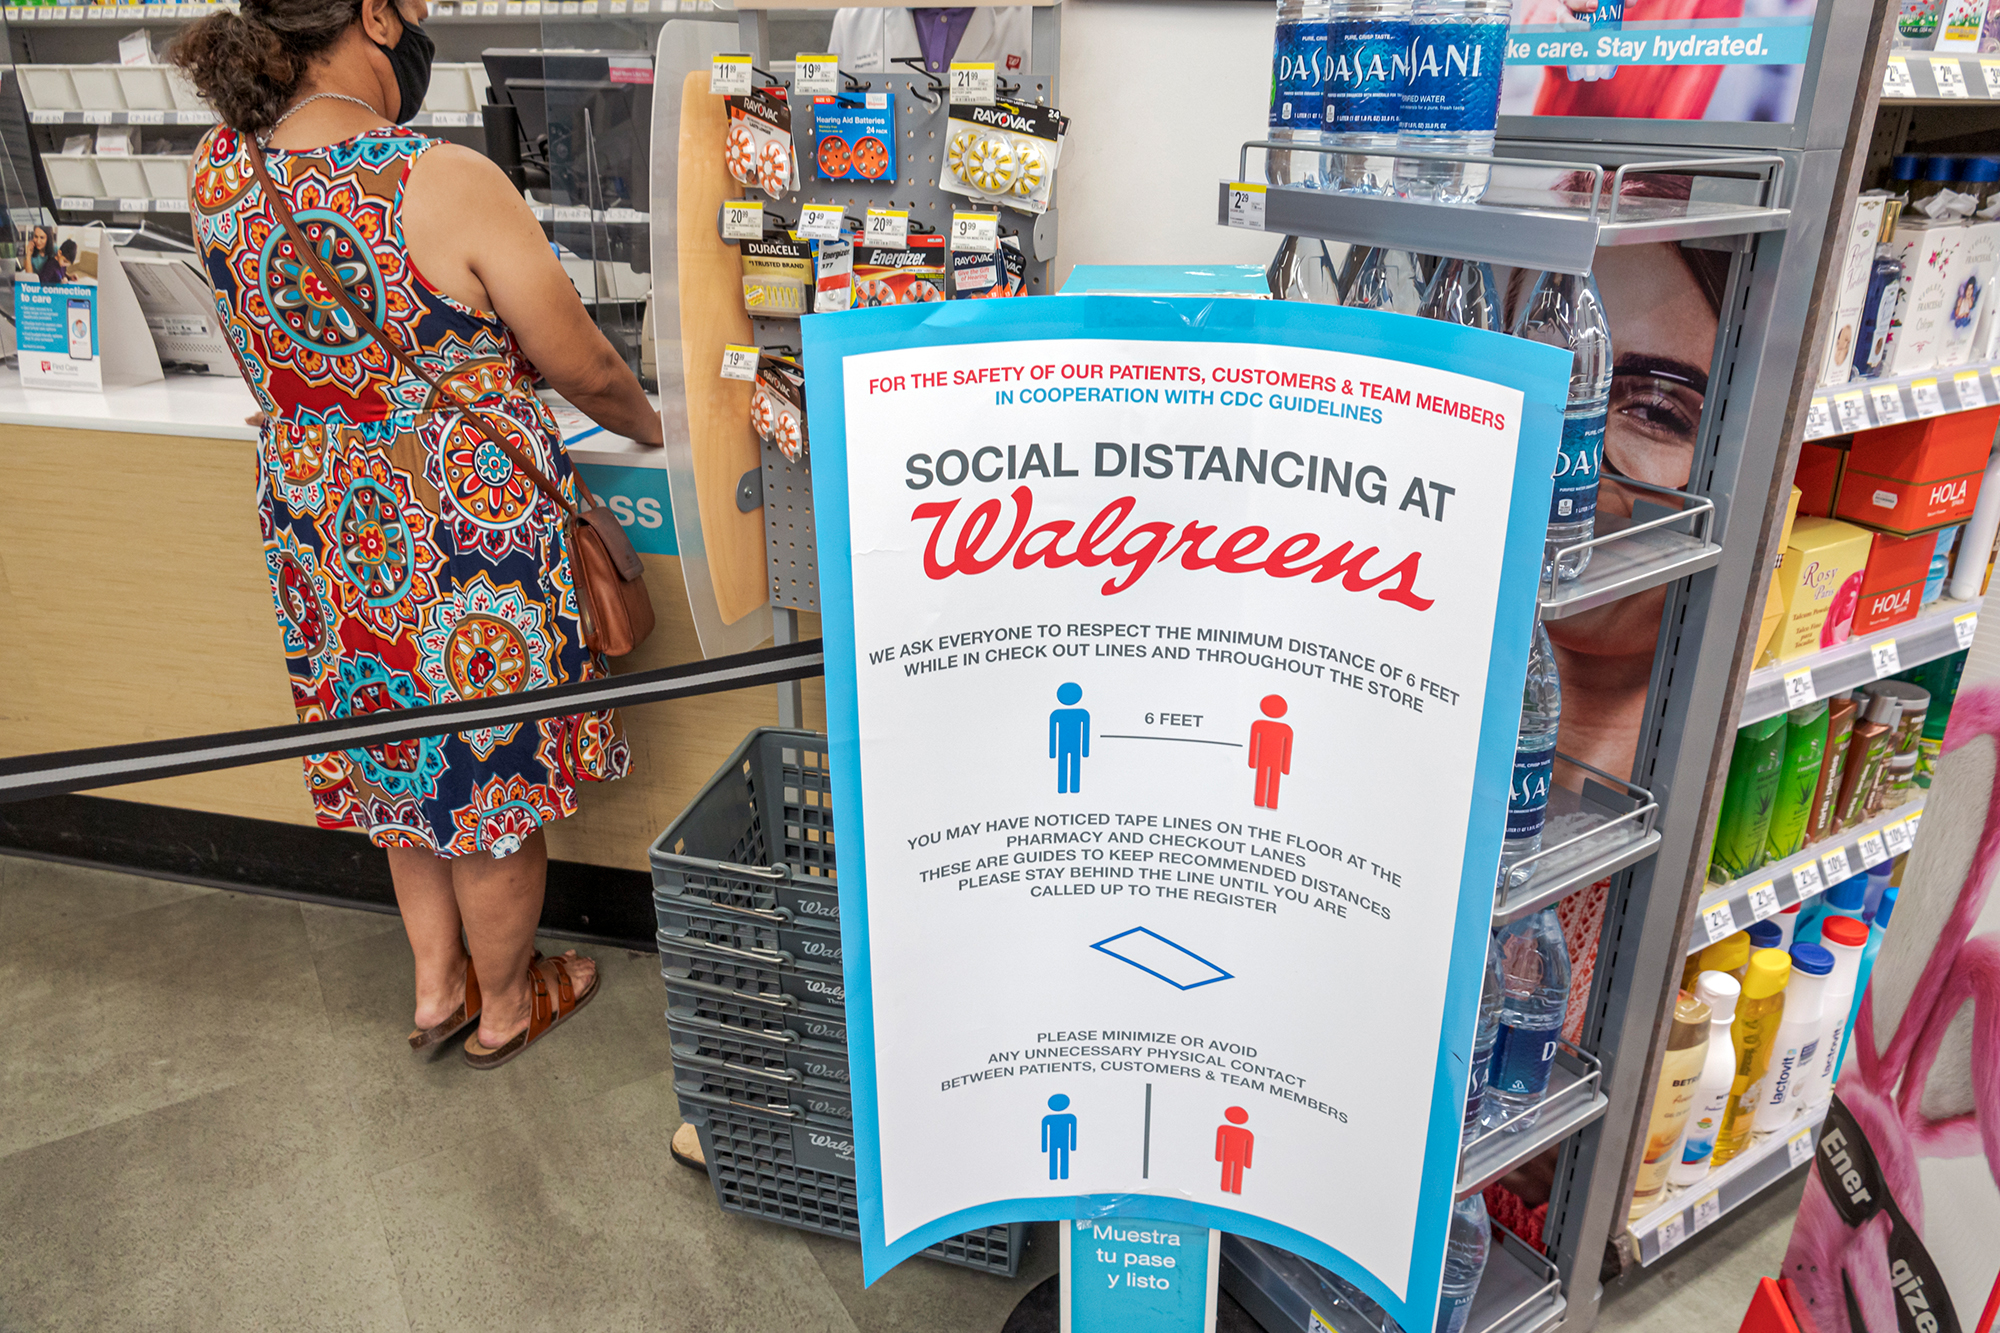 Welcome to Walgreens. The doctor will be with you soon